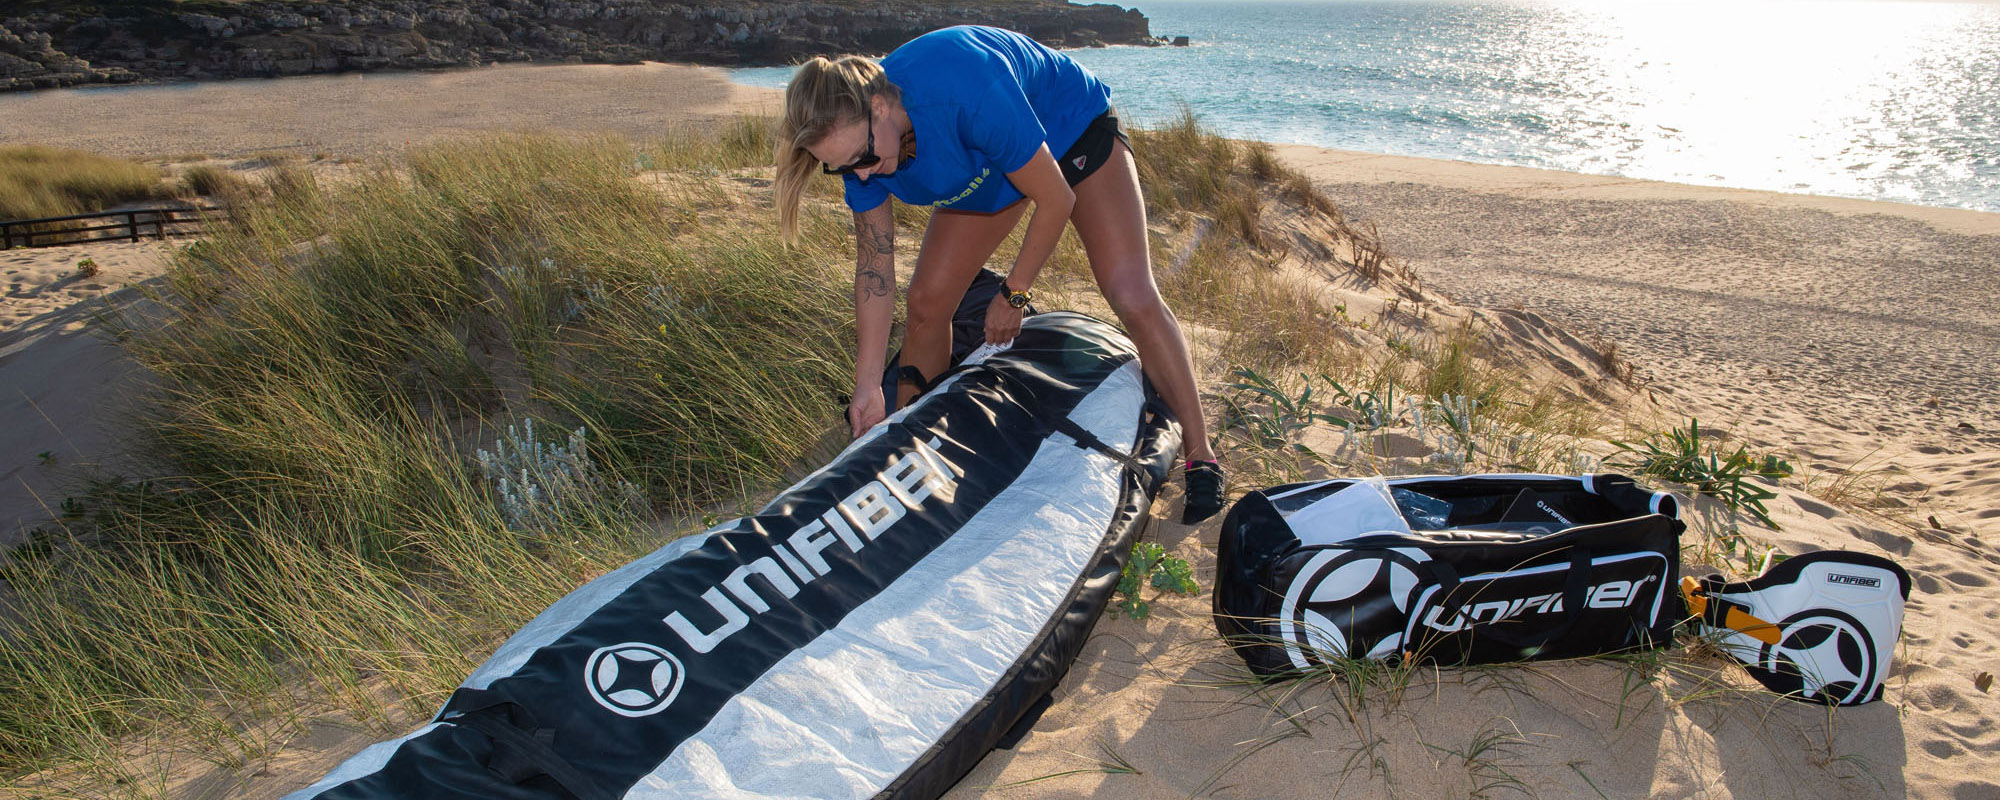 Unifiber -   North Wind sea sports